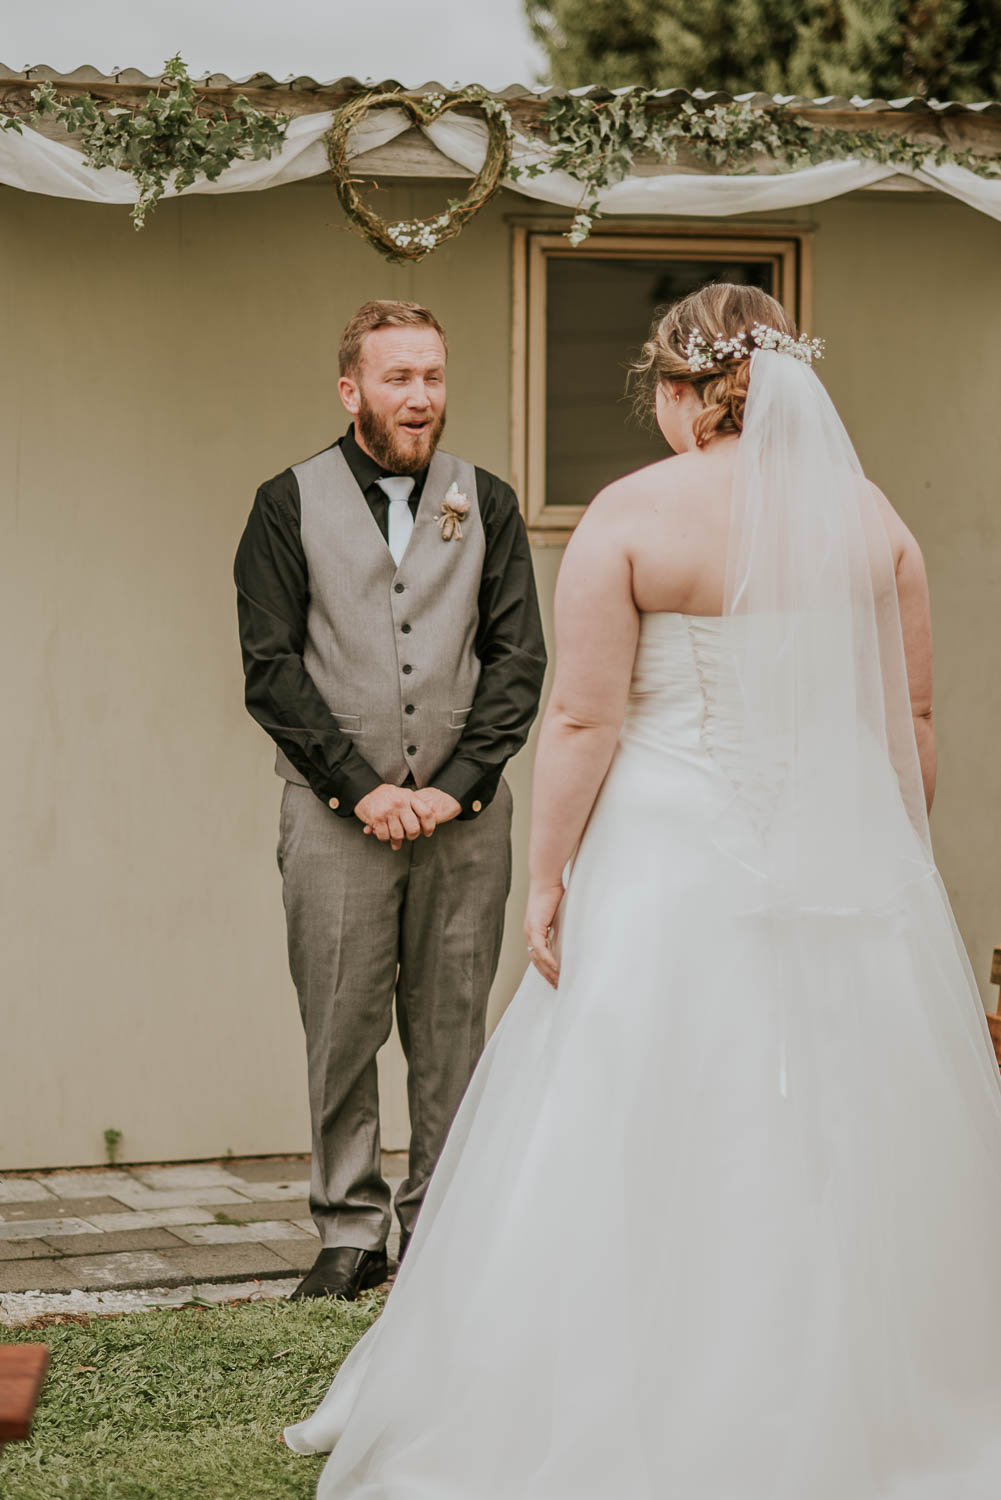 David-Alysha-Farm-Rustic-Auckland-Wedding-33